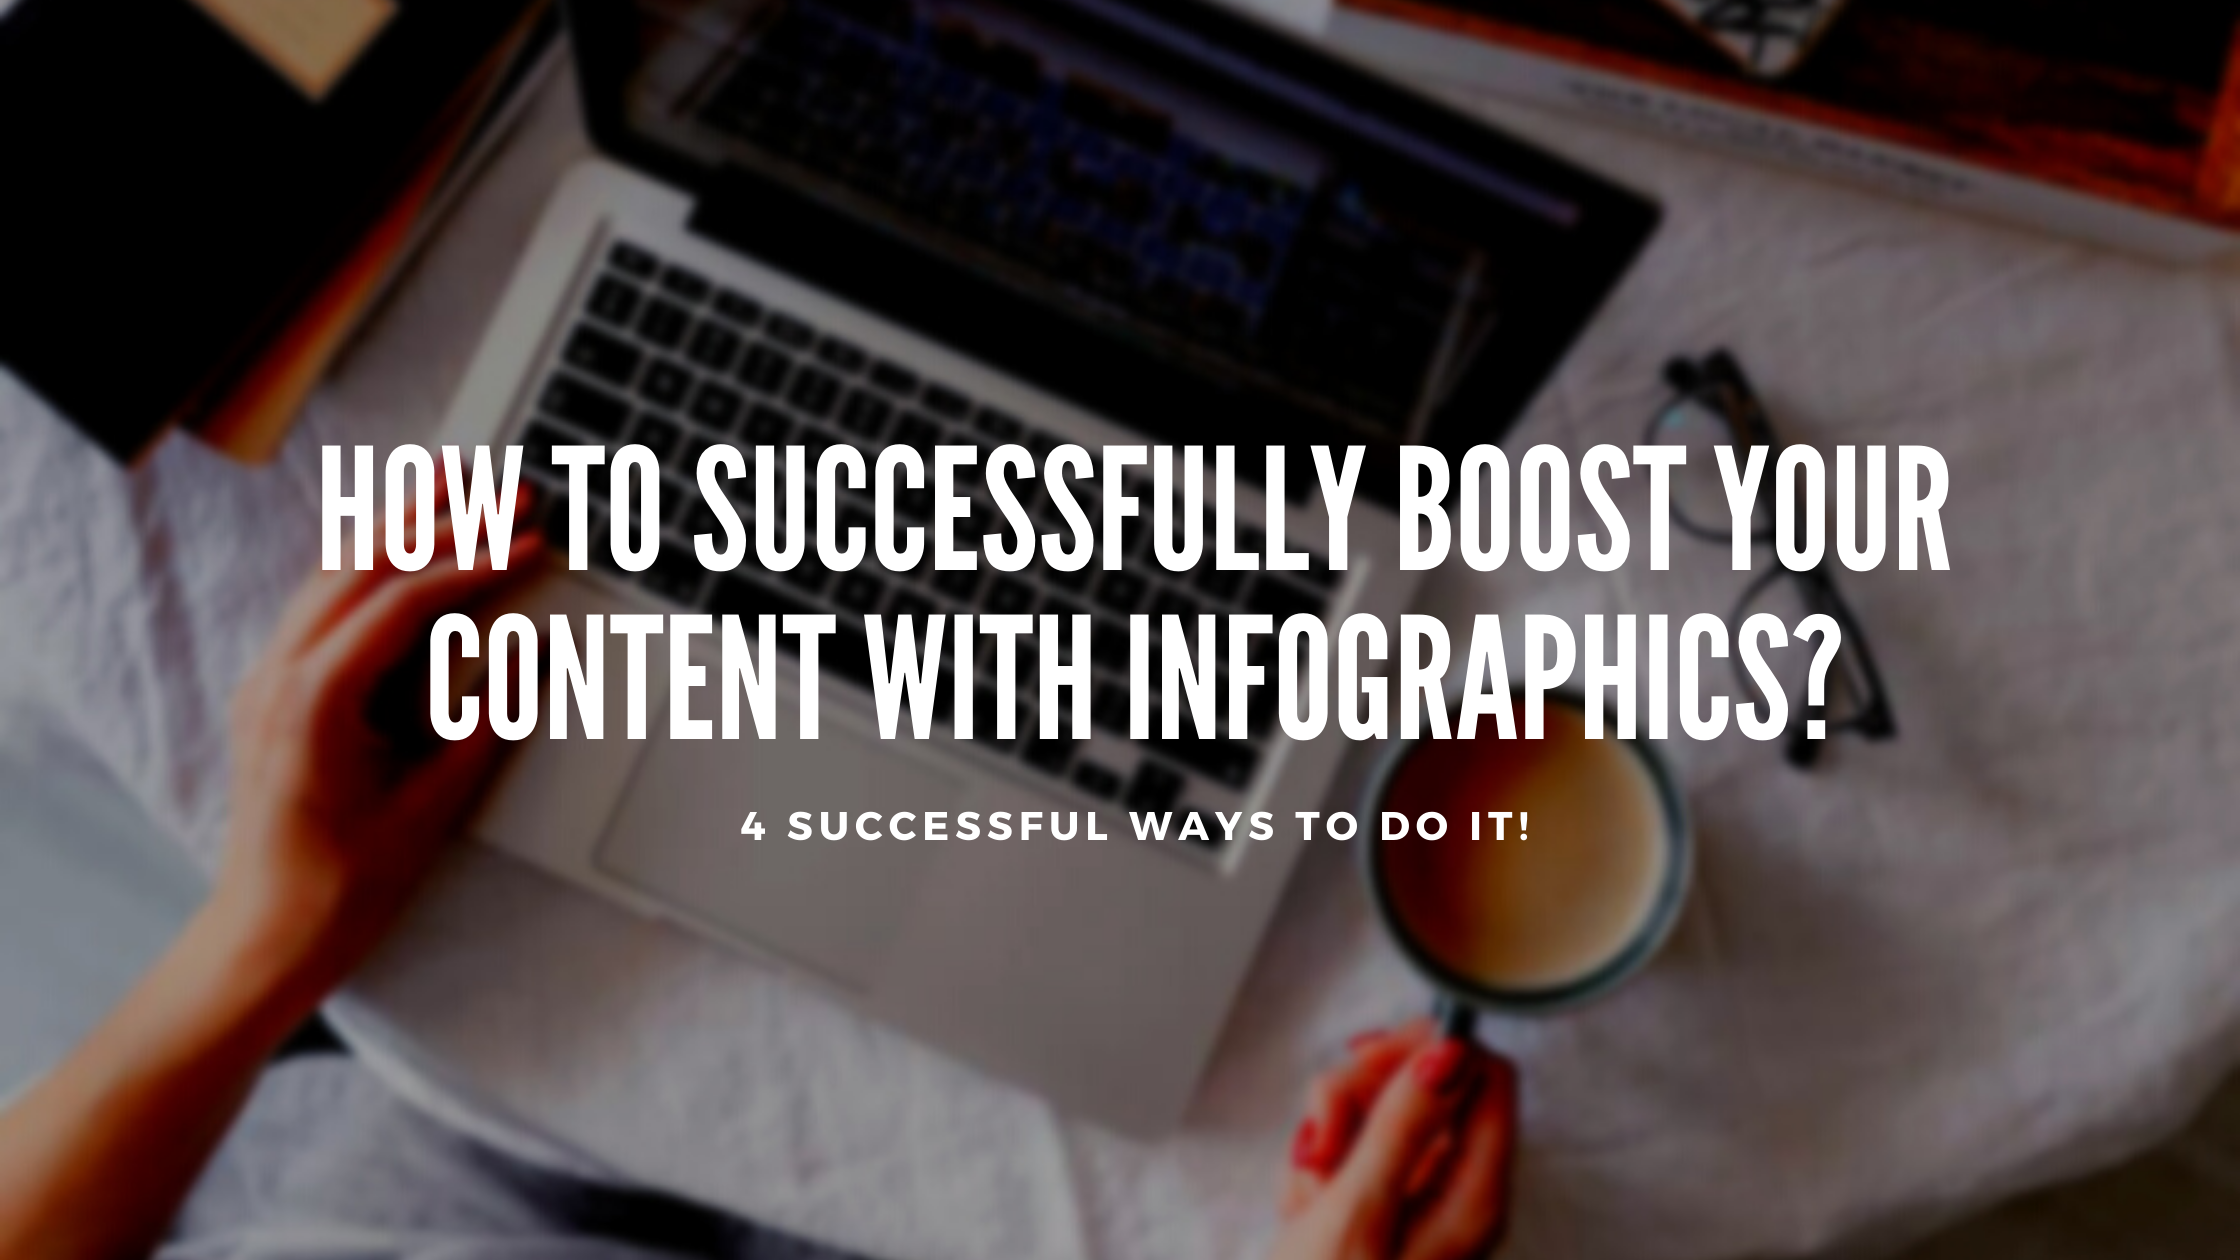 4 successful ways to boost content